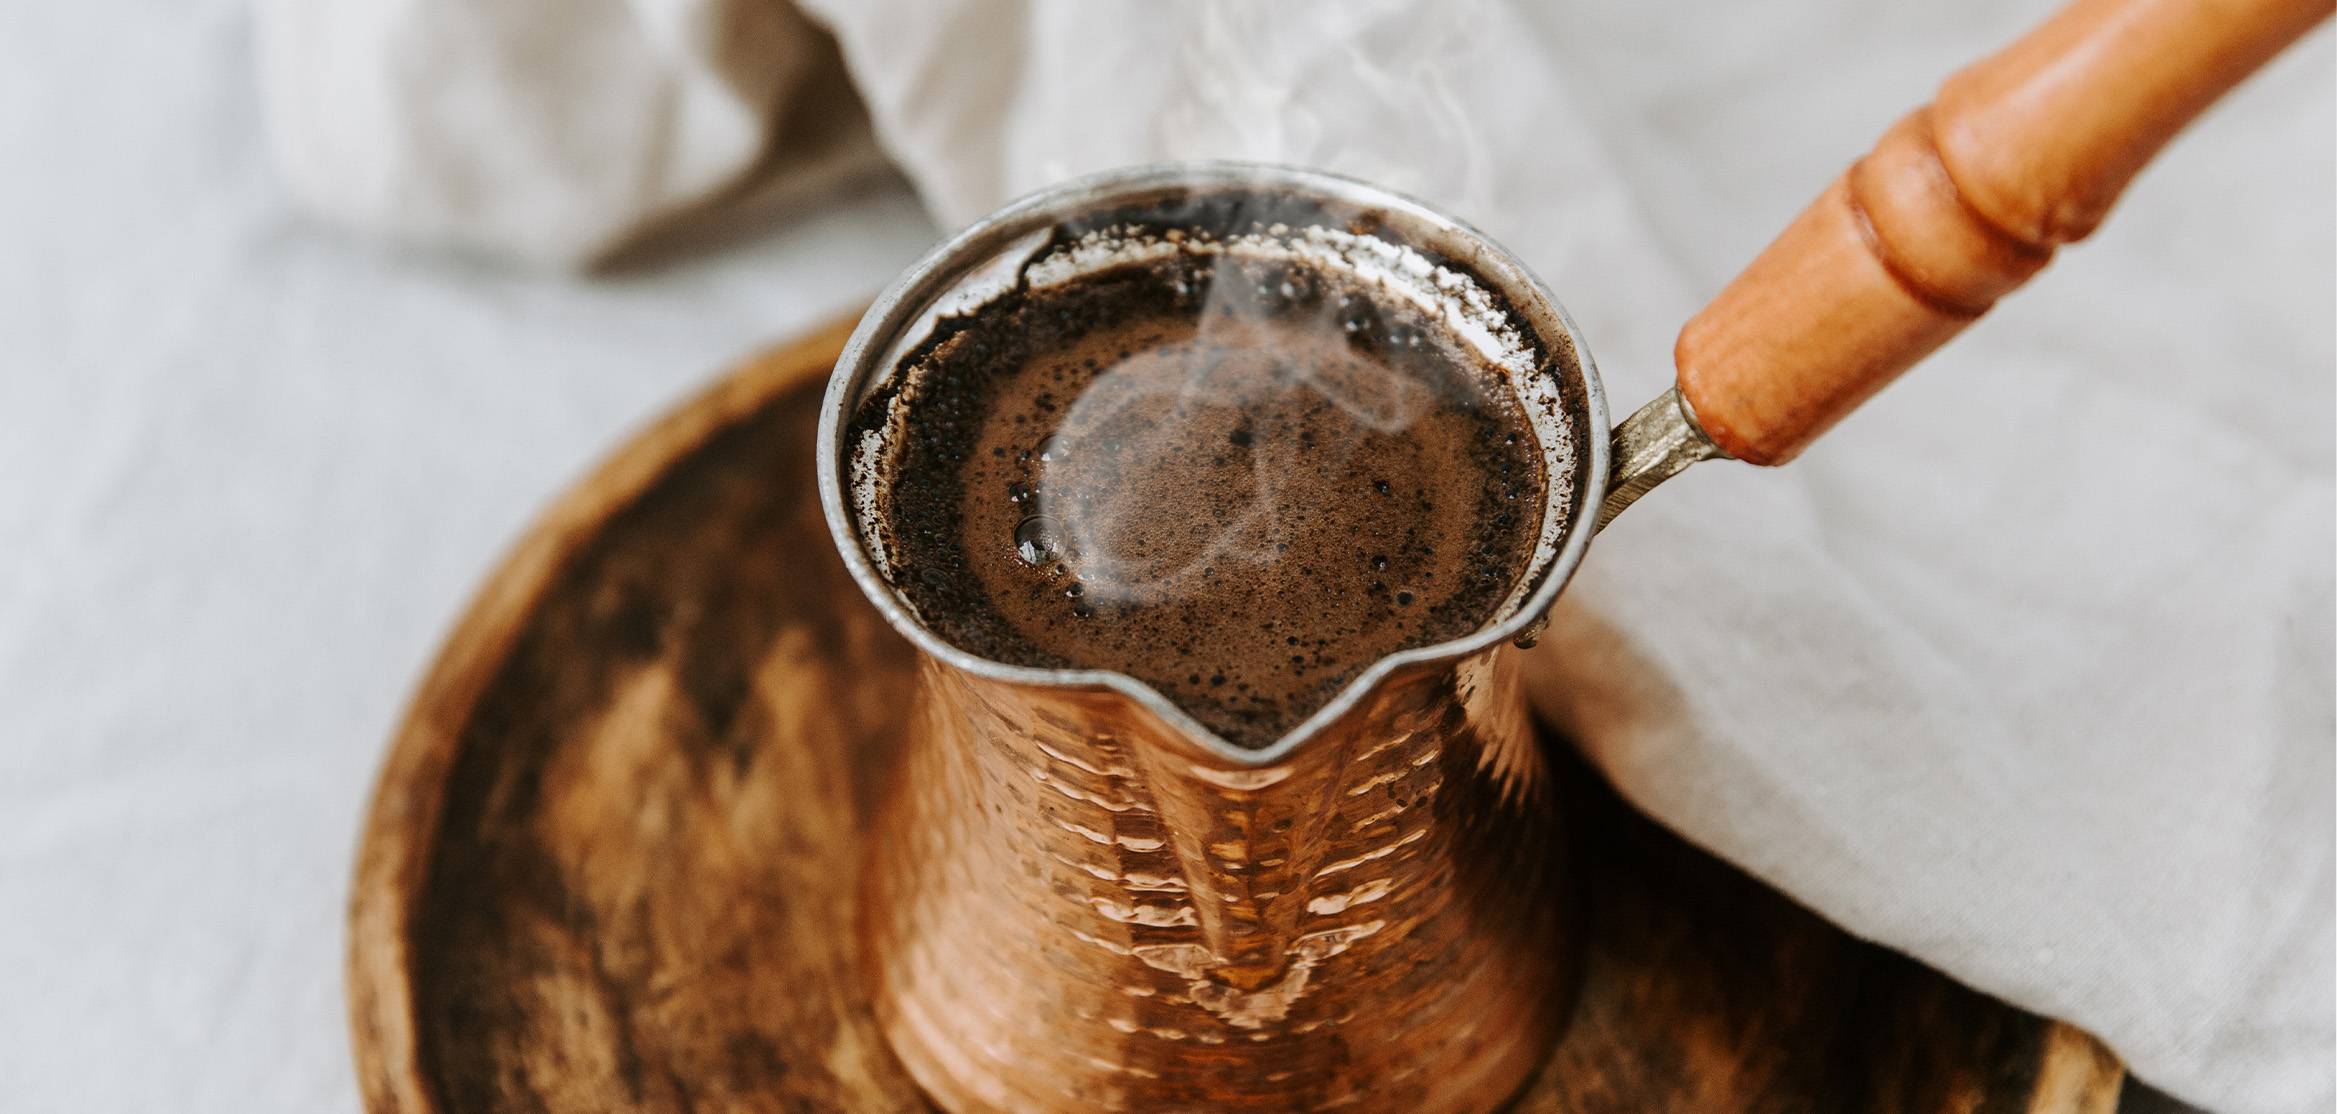 How to Make Turkish Coffee?